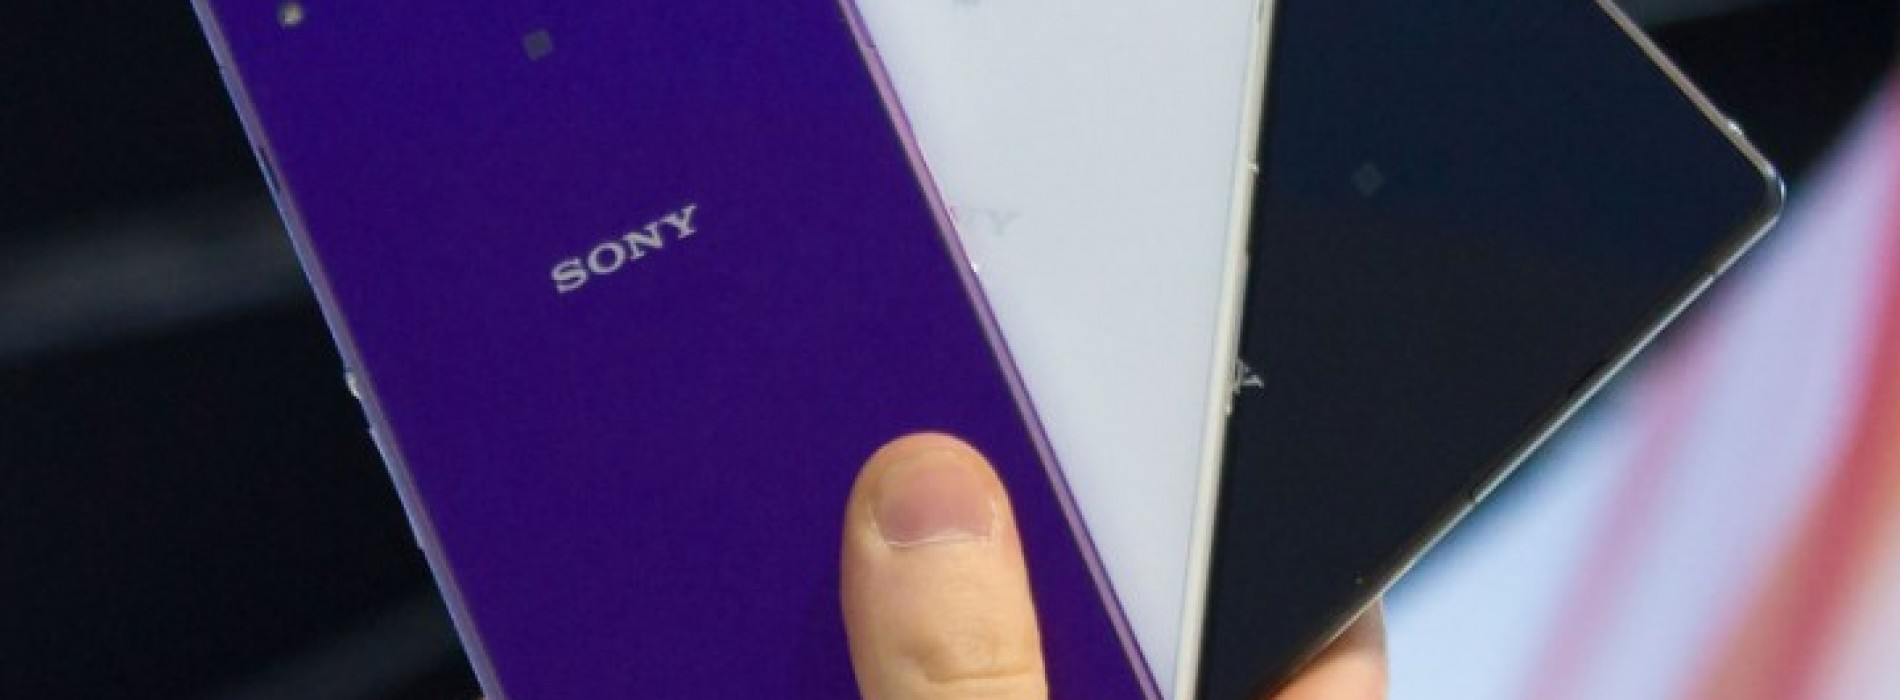 Sony finally brings phones to the U.S. with the Xperia Z2